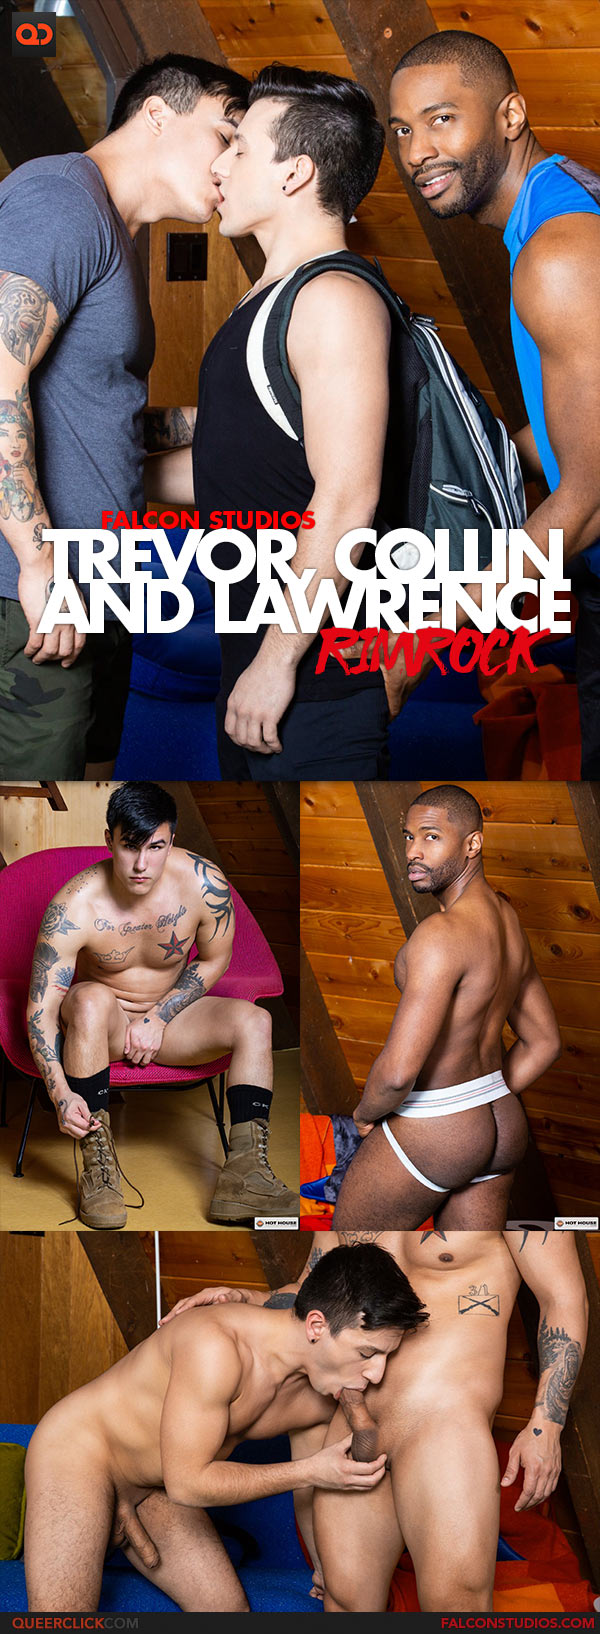 Falcon Studios: Trevor Miller, Collin Lust and Lawrence Portland Bareback Threesome - Rimrock